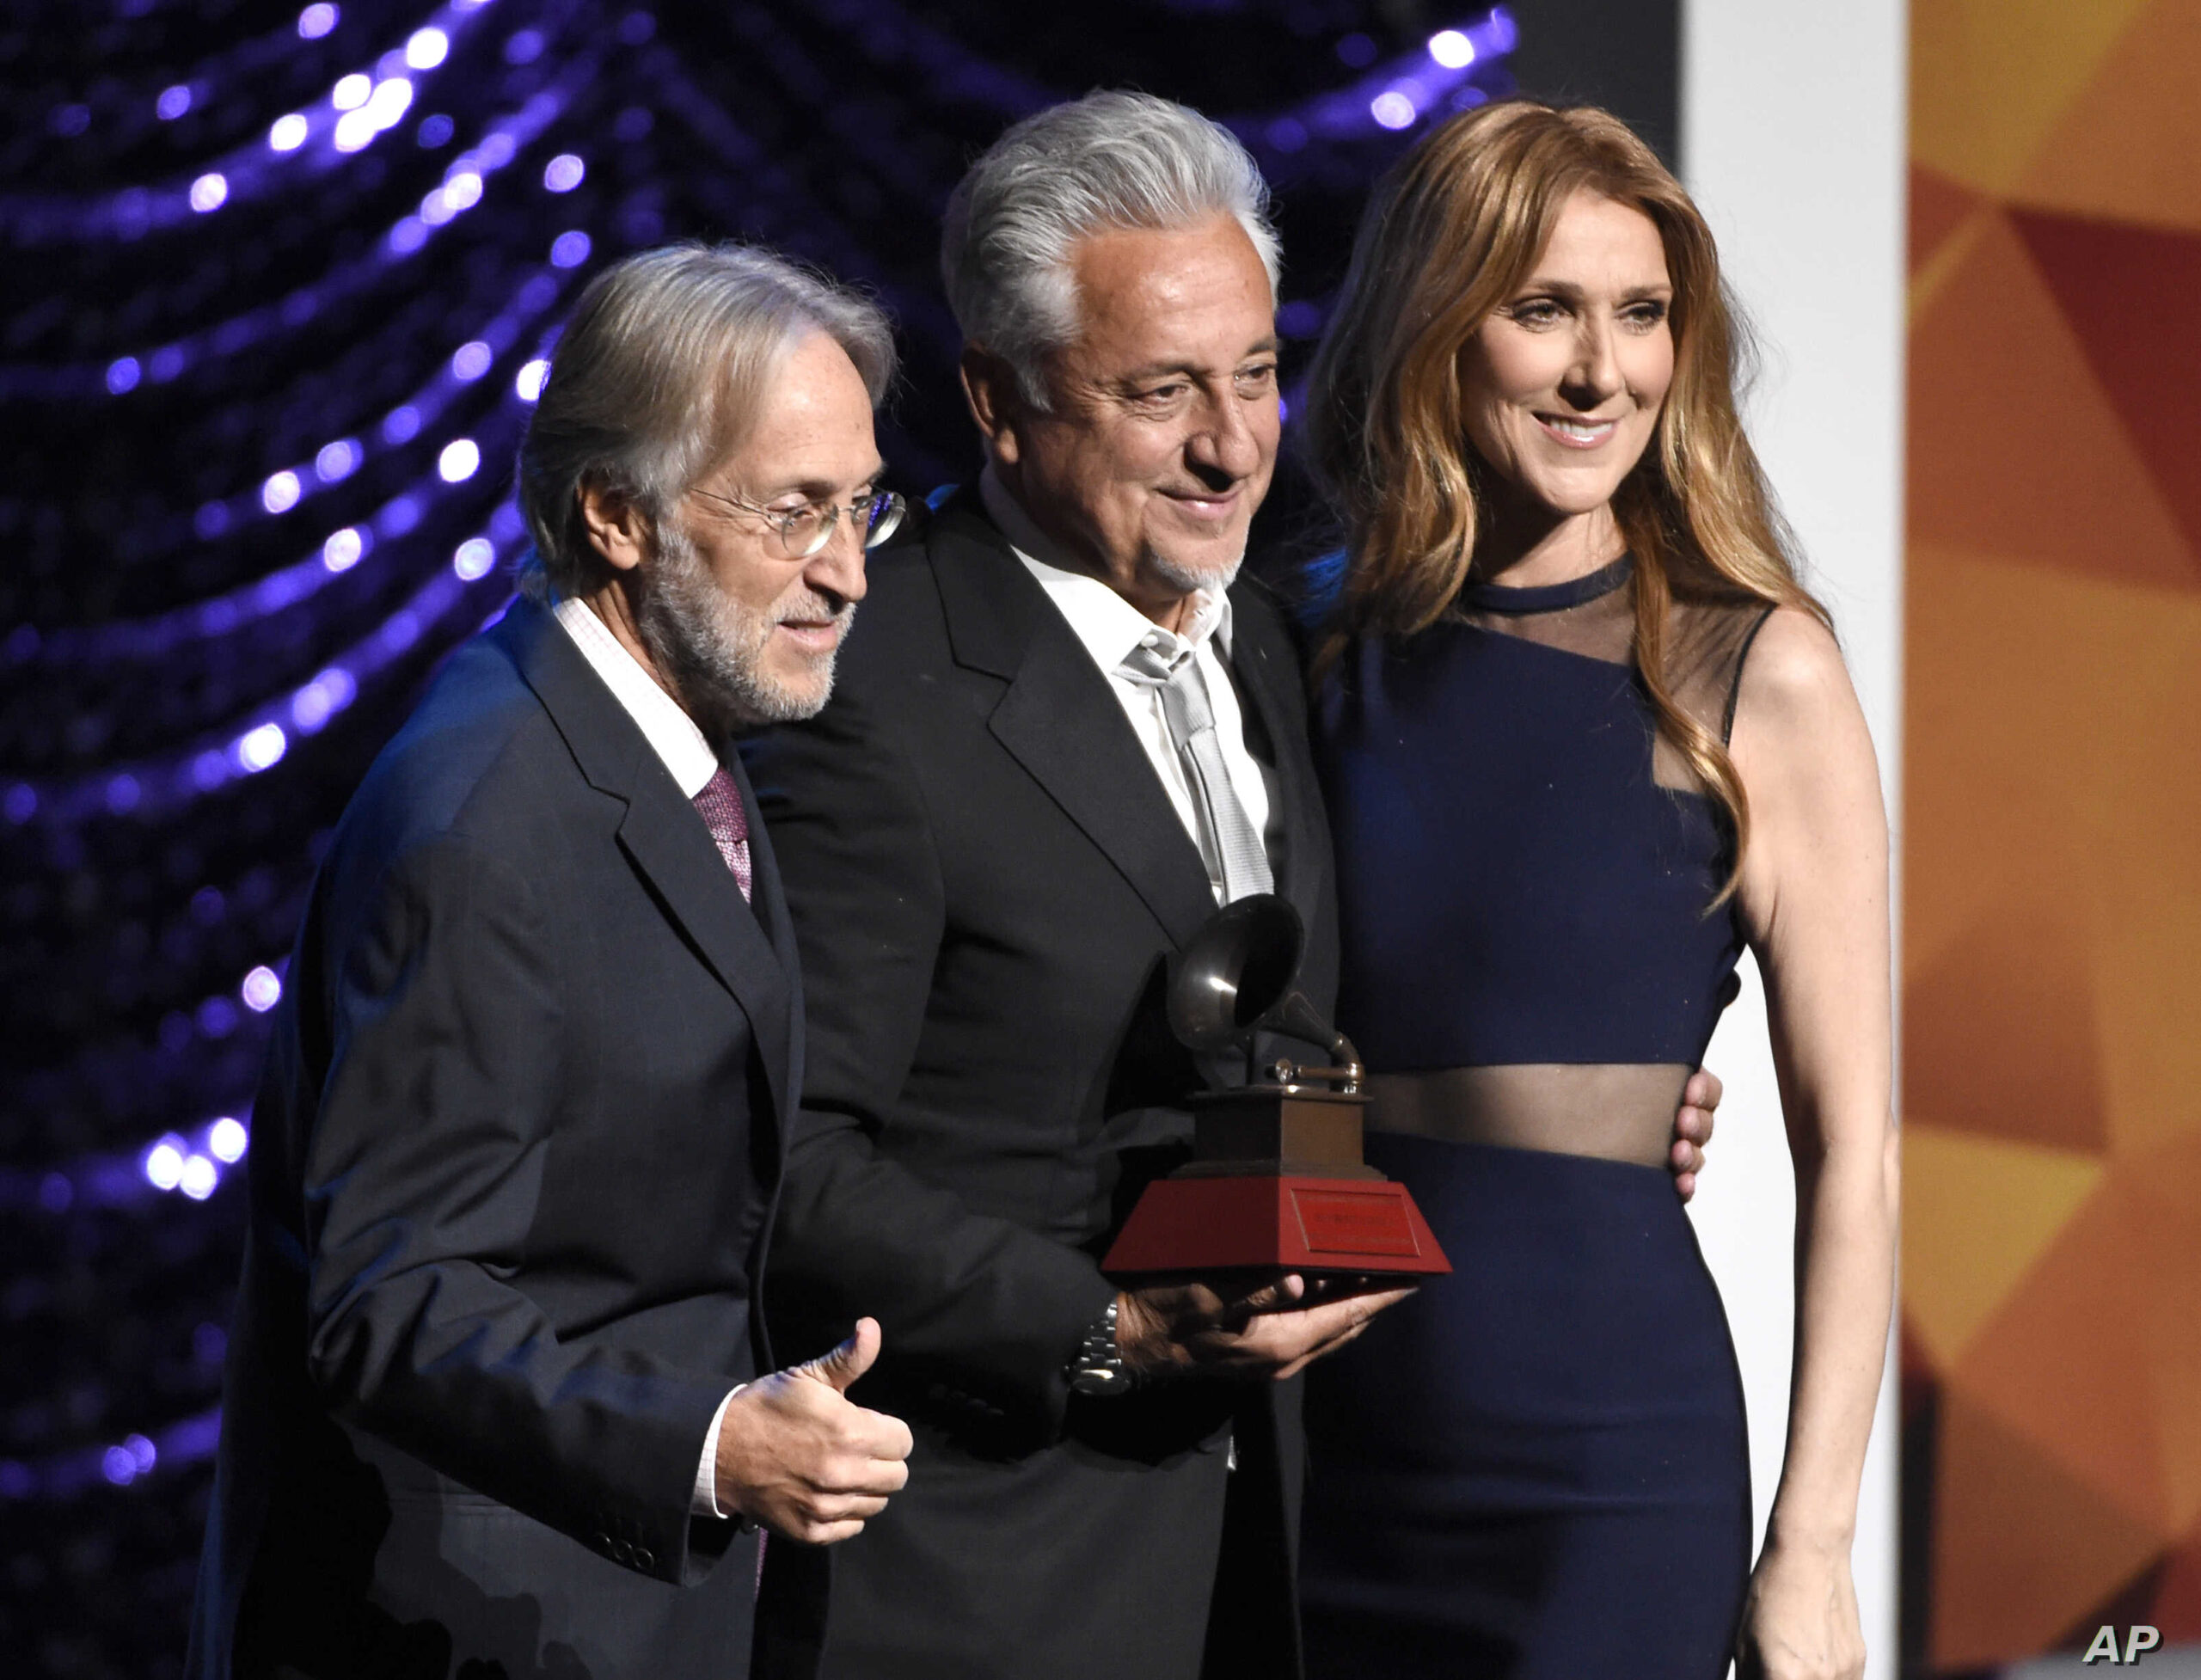 Neil Portnow, president and CEO of the Recording Academy, from left, Trustees Award recipient Humberto Gatica and Celine Dion pose on stage at the Lifetime Achievement and Trustees Awards presentation at the Ka Theater in the MGM Grand Hotel on Wednesday, Nov. 18, 2015, in Las Vegas. (Photo by Chris Pizzello/Invision/AP)